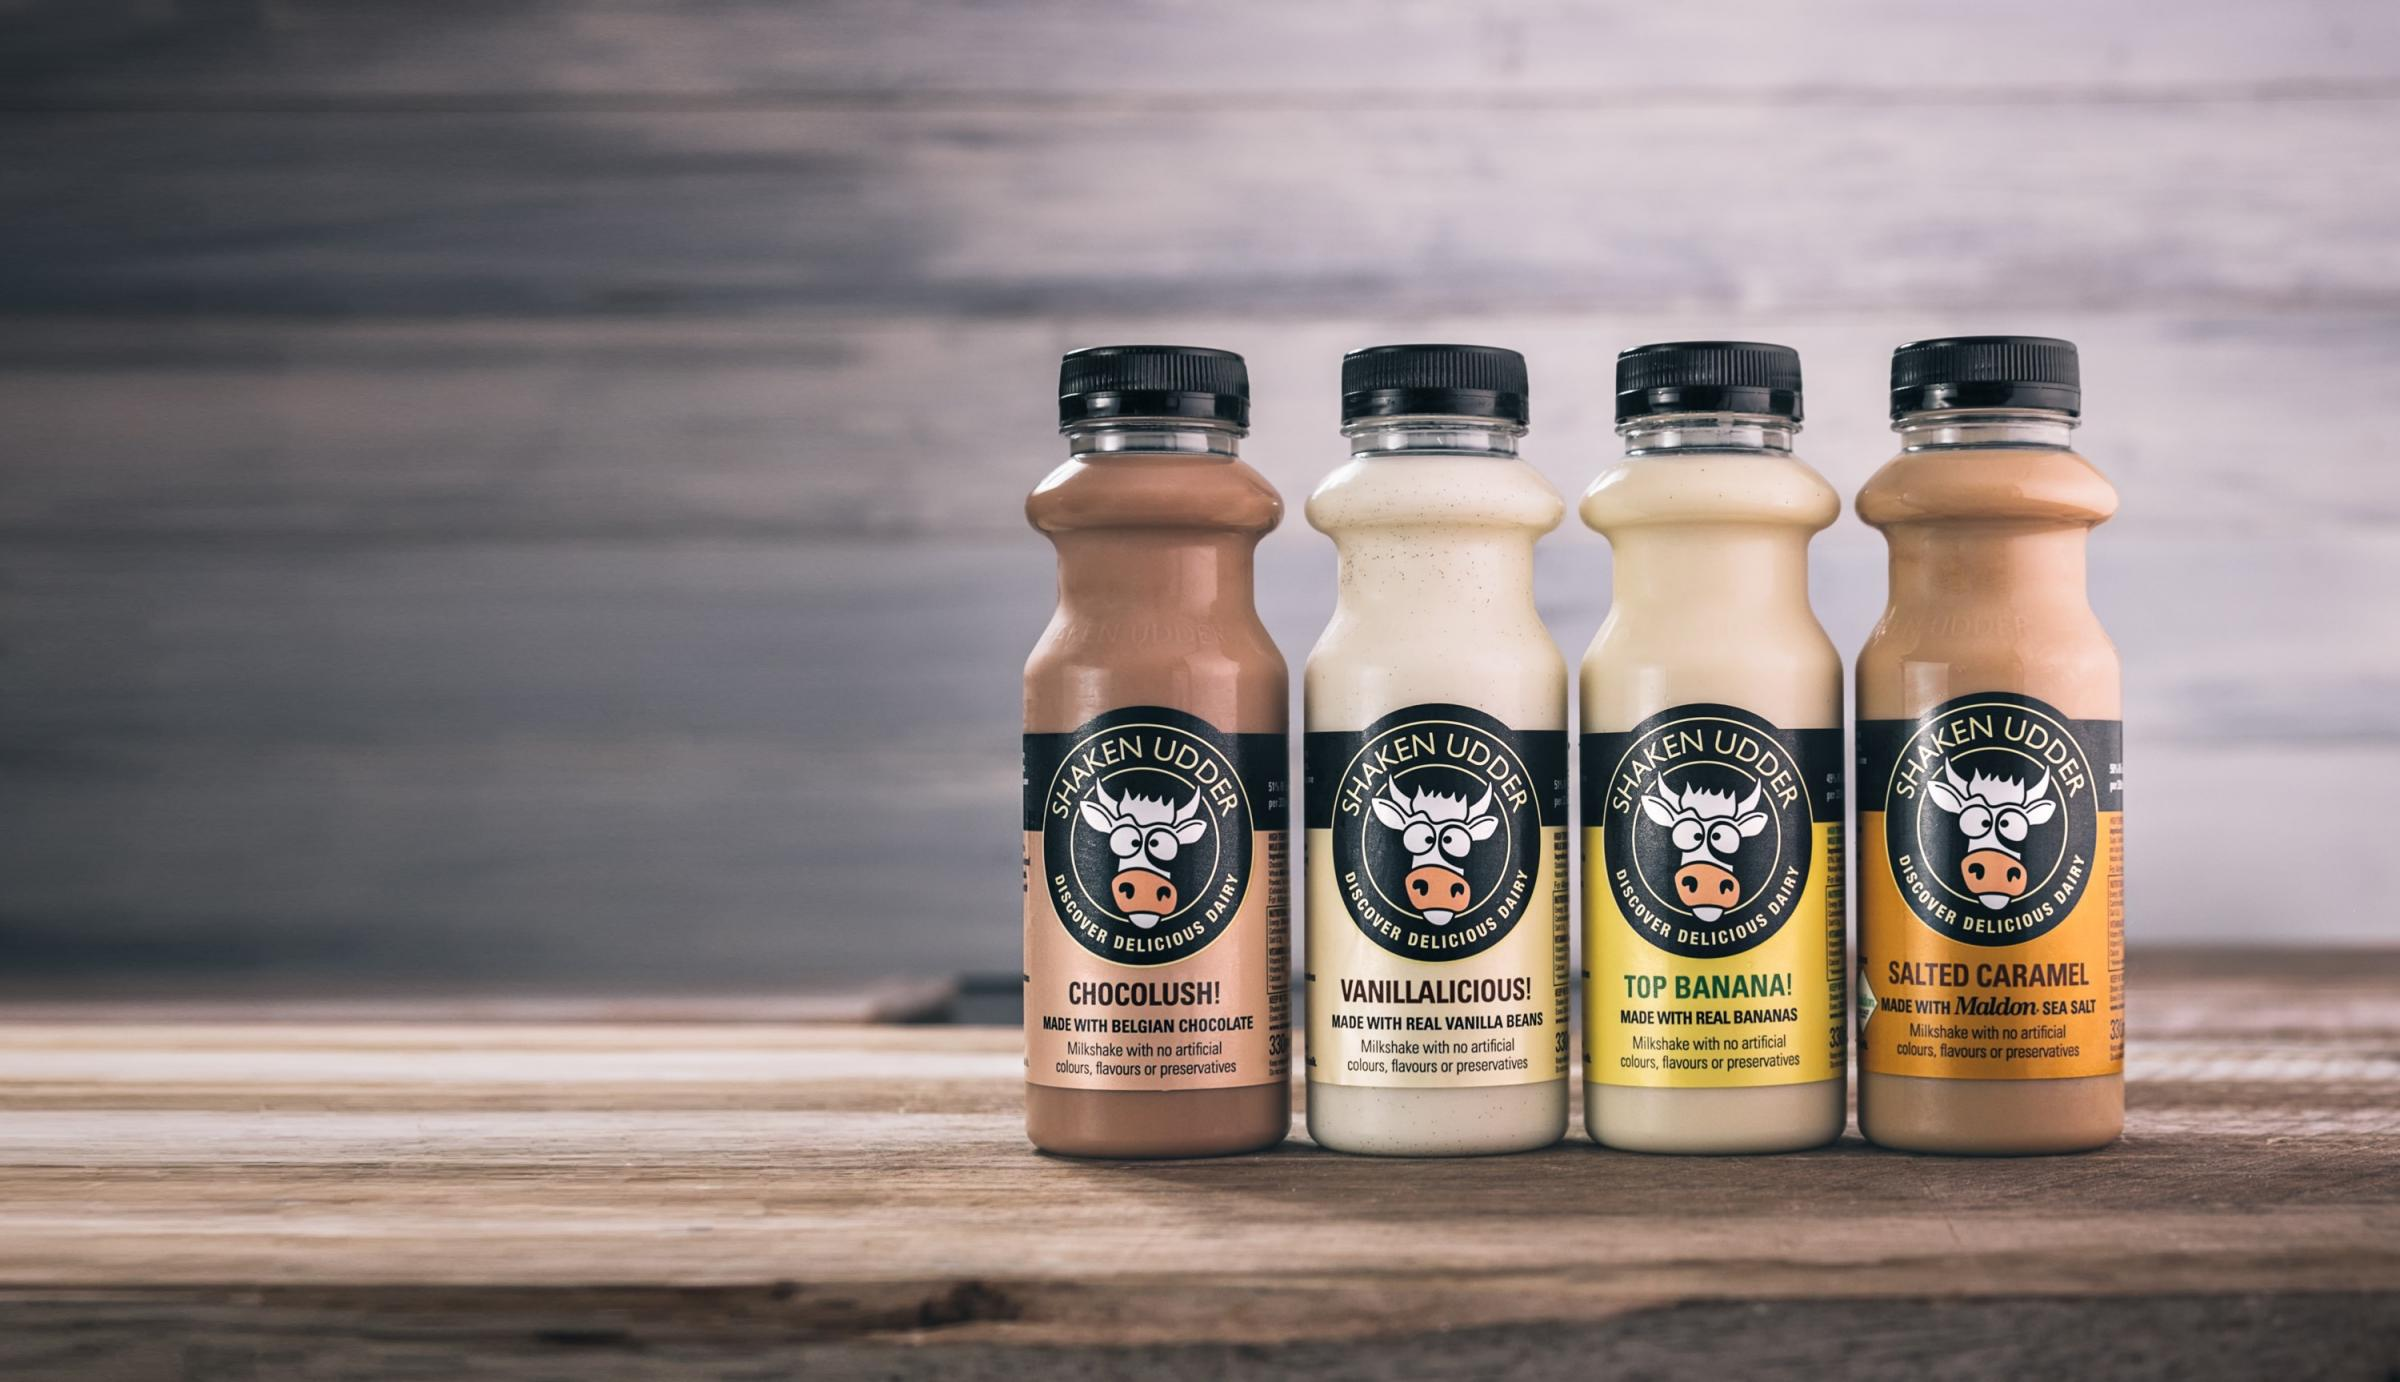 Four Shaken Udder milkshakes will now be stocked nationwide in Sainsbury's